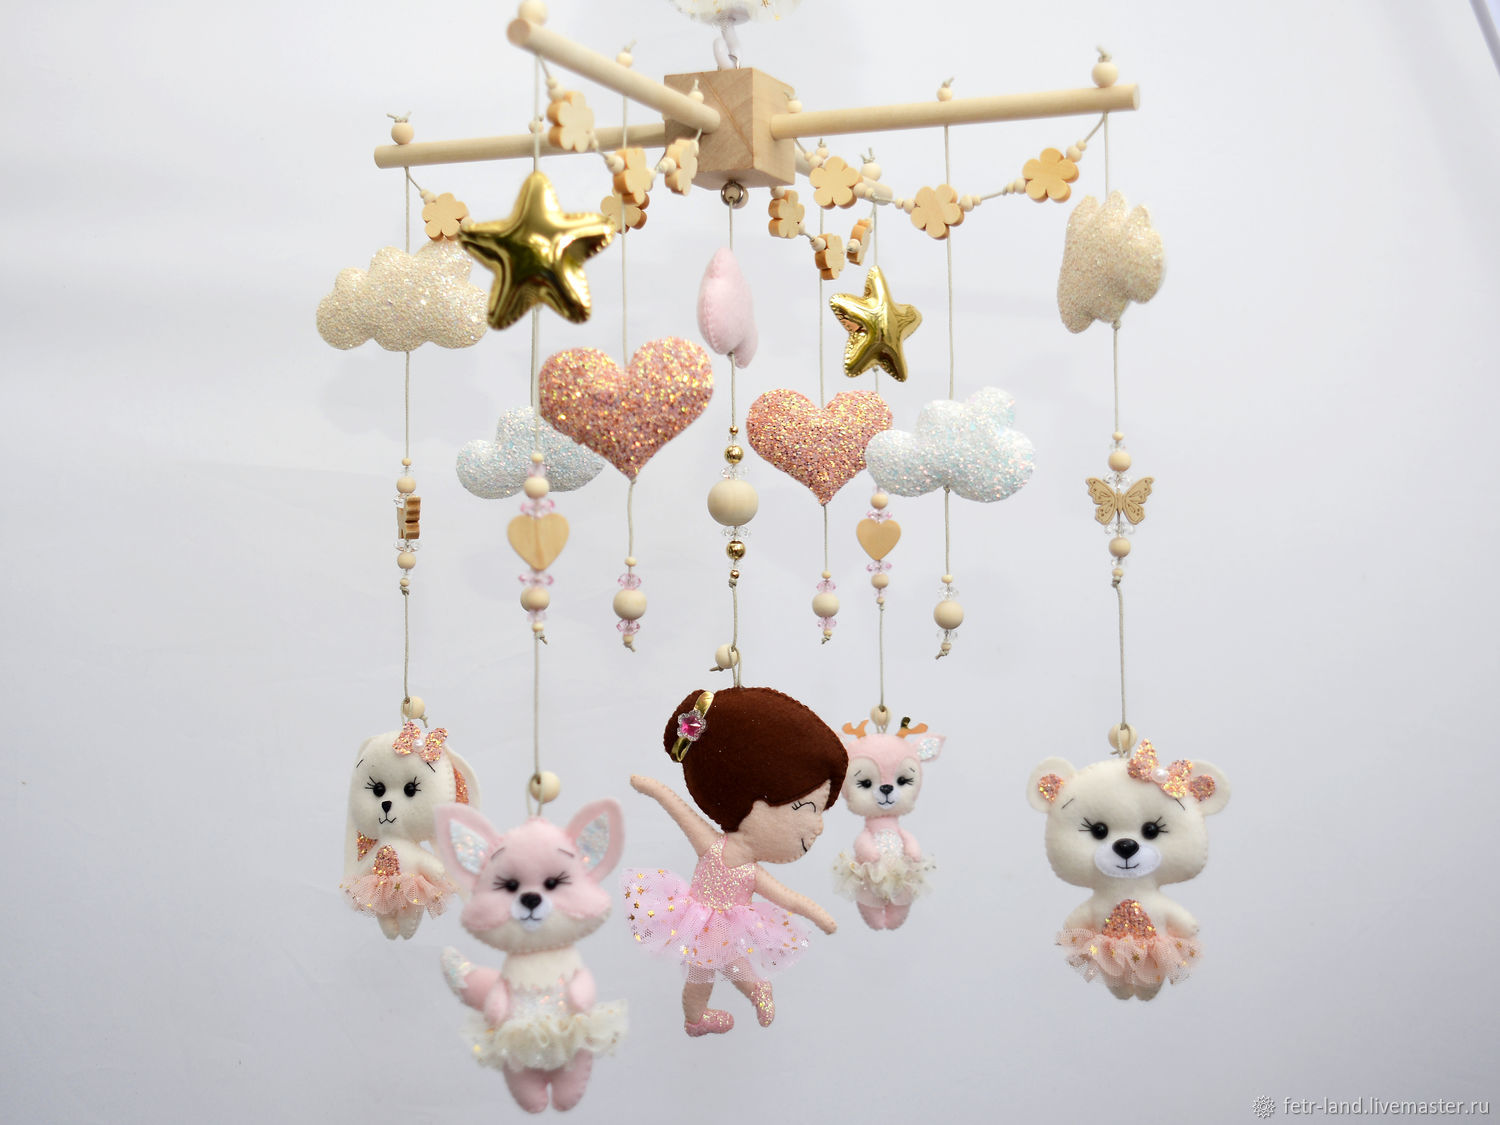 Mobiles on the crib: ' Ballerinas forest animals', Toys for cribs, Belgorod,  Фото №1